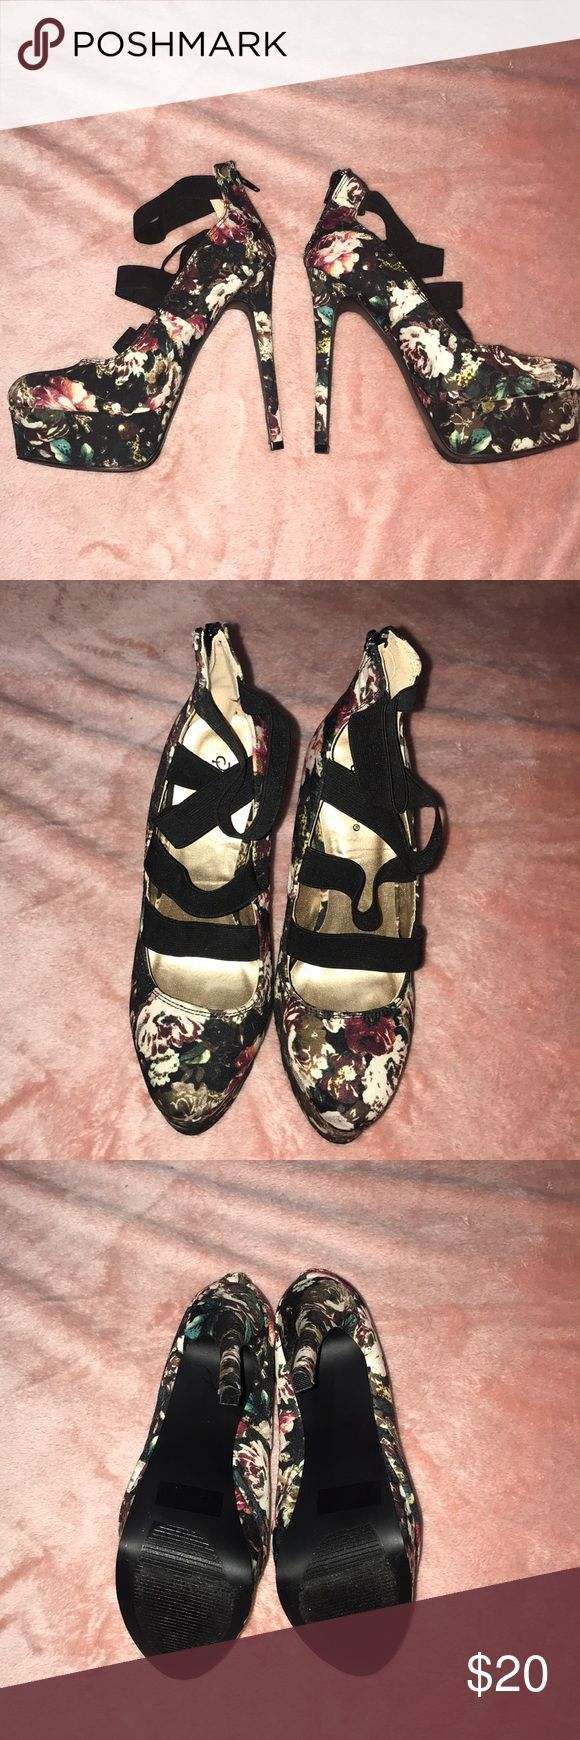 "Floral print heels! 🎉 like new floral print high heels!🎉 ♥️ barely worn ♥️like new condition  ♥️5"" heel ♥️size 7.5 💋make an offer !! 💋 Charlotte Russe Shoes Heels"